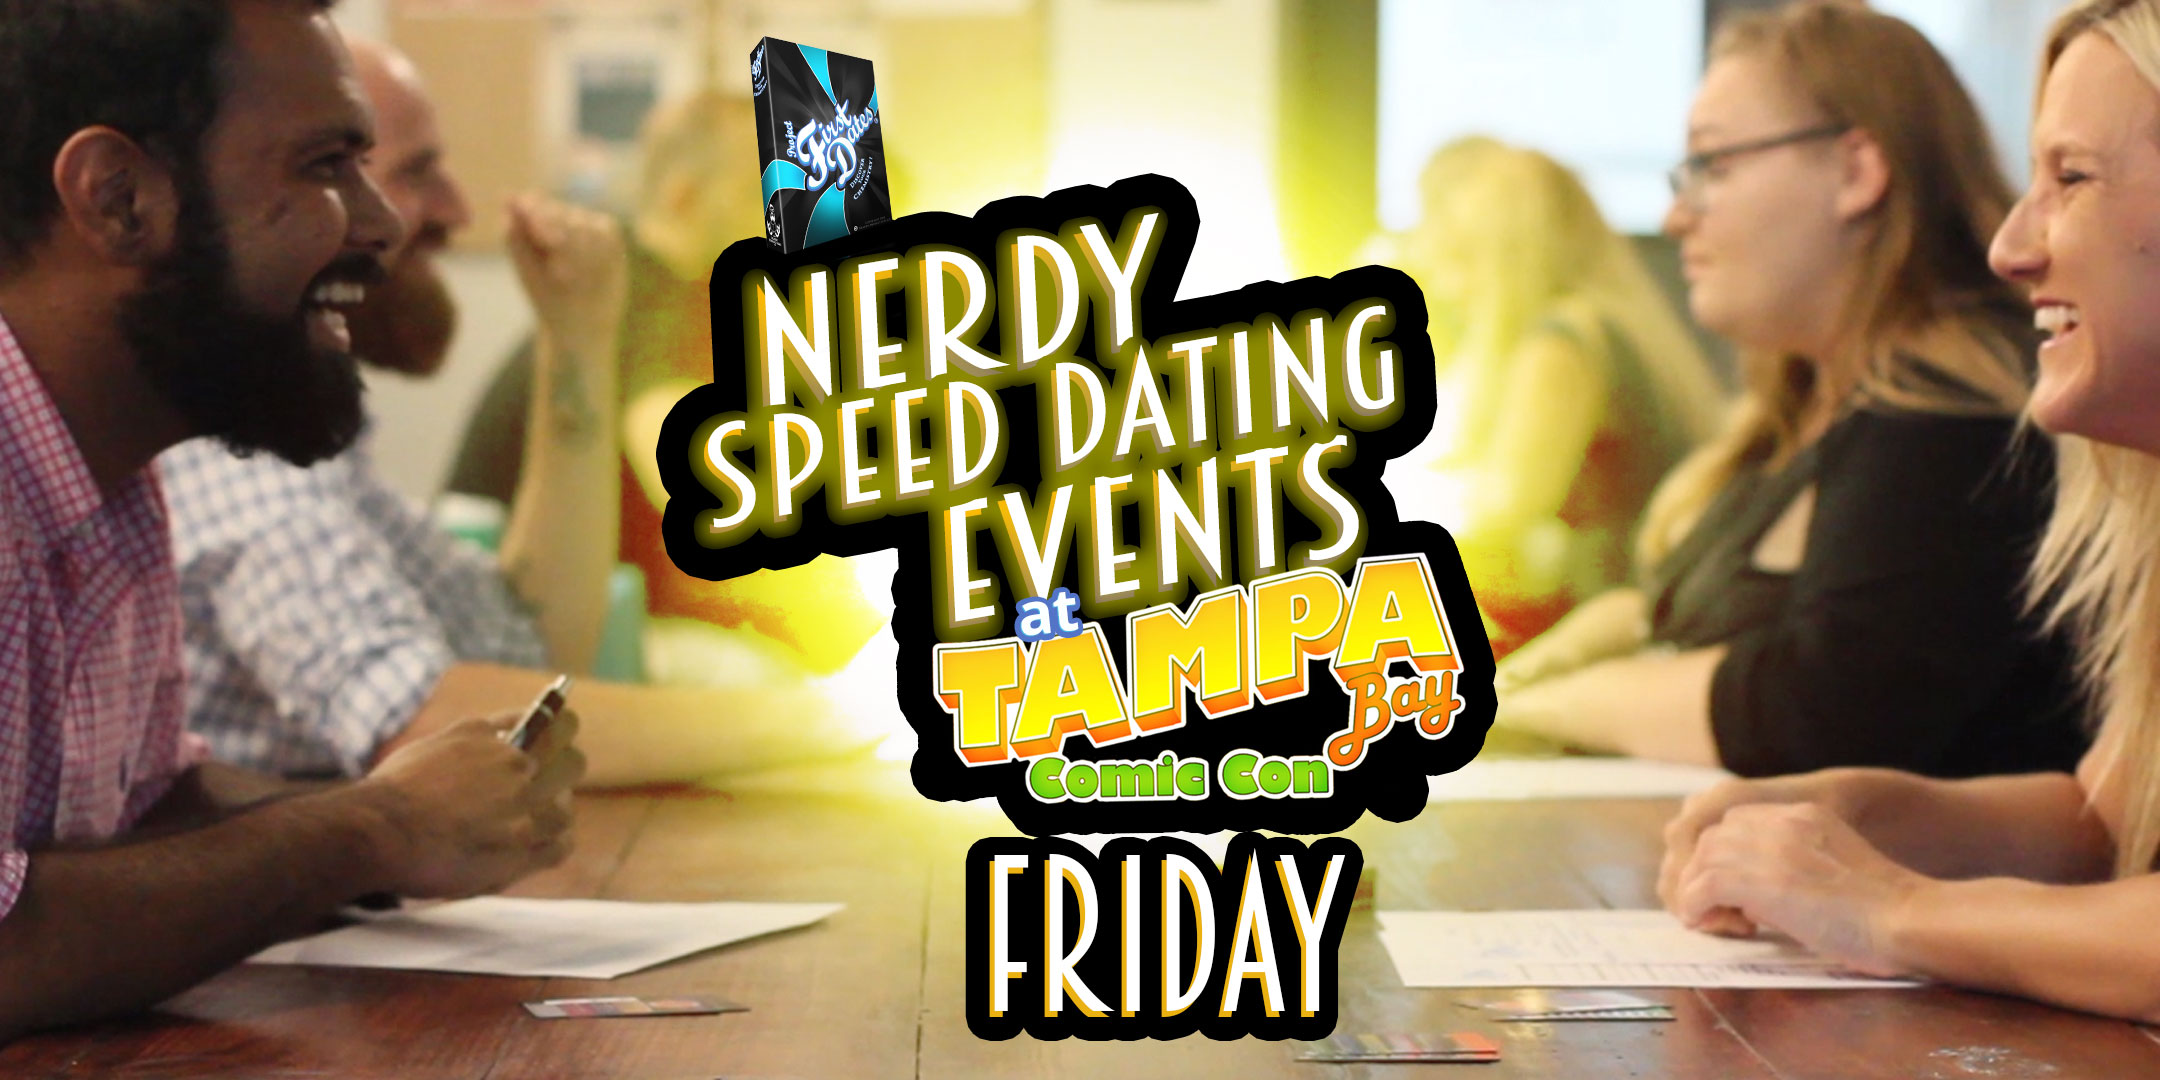 Tampa Bay Area speed dating